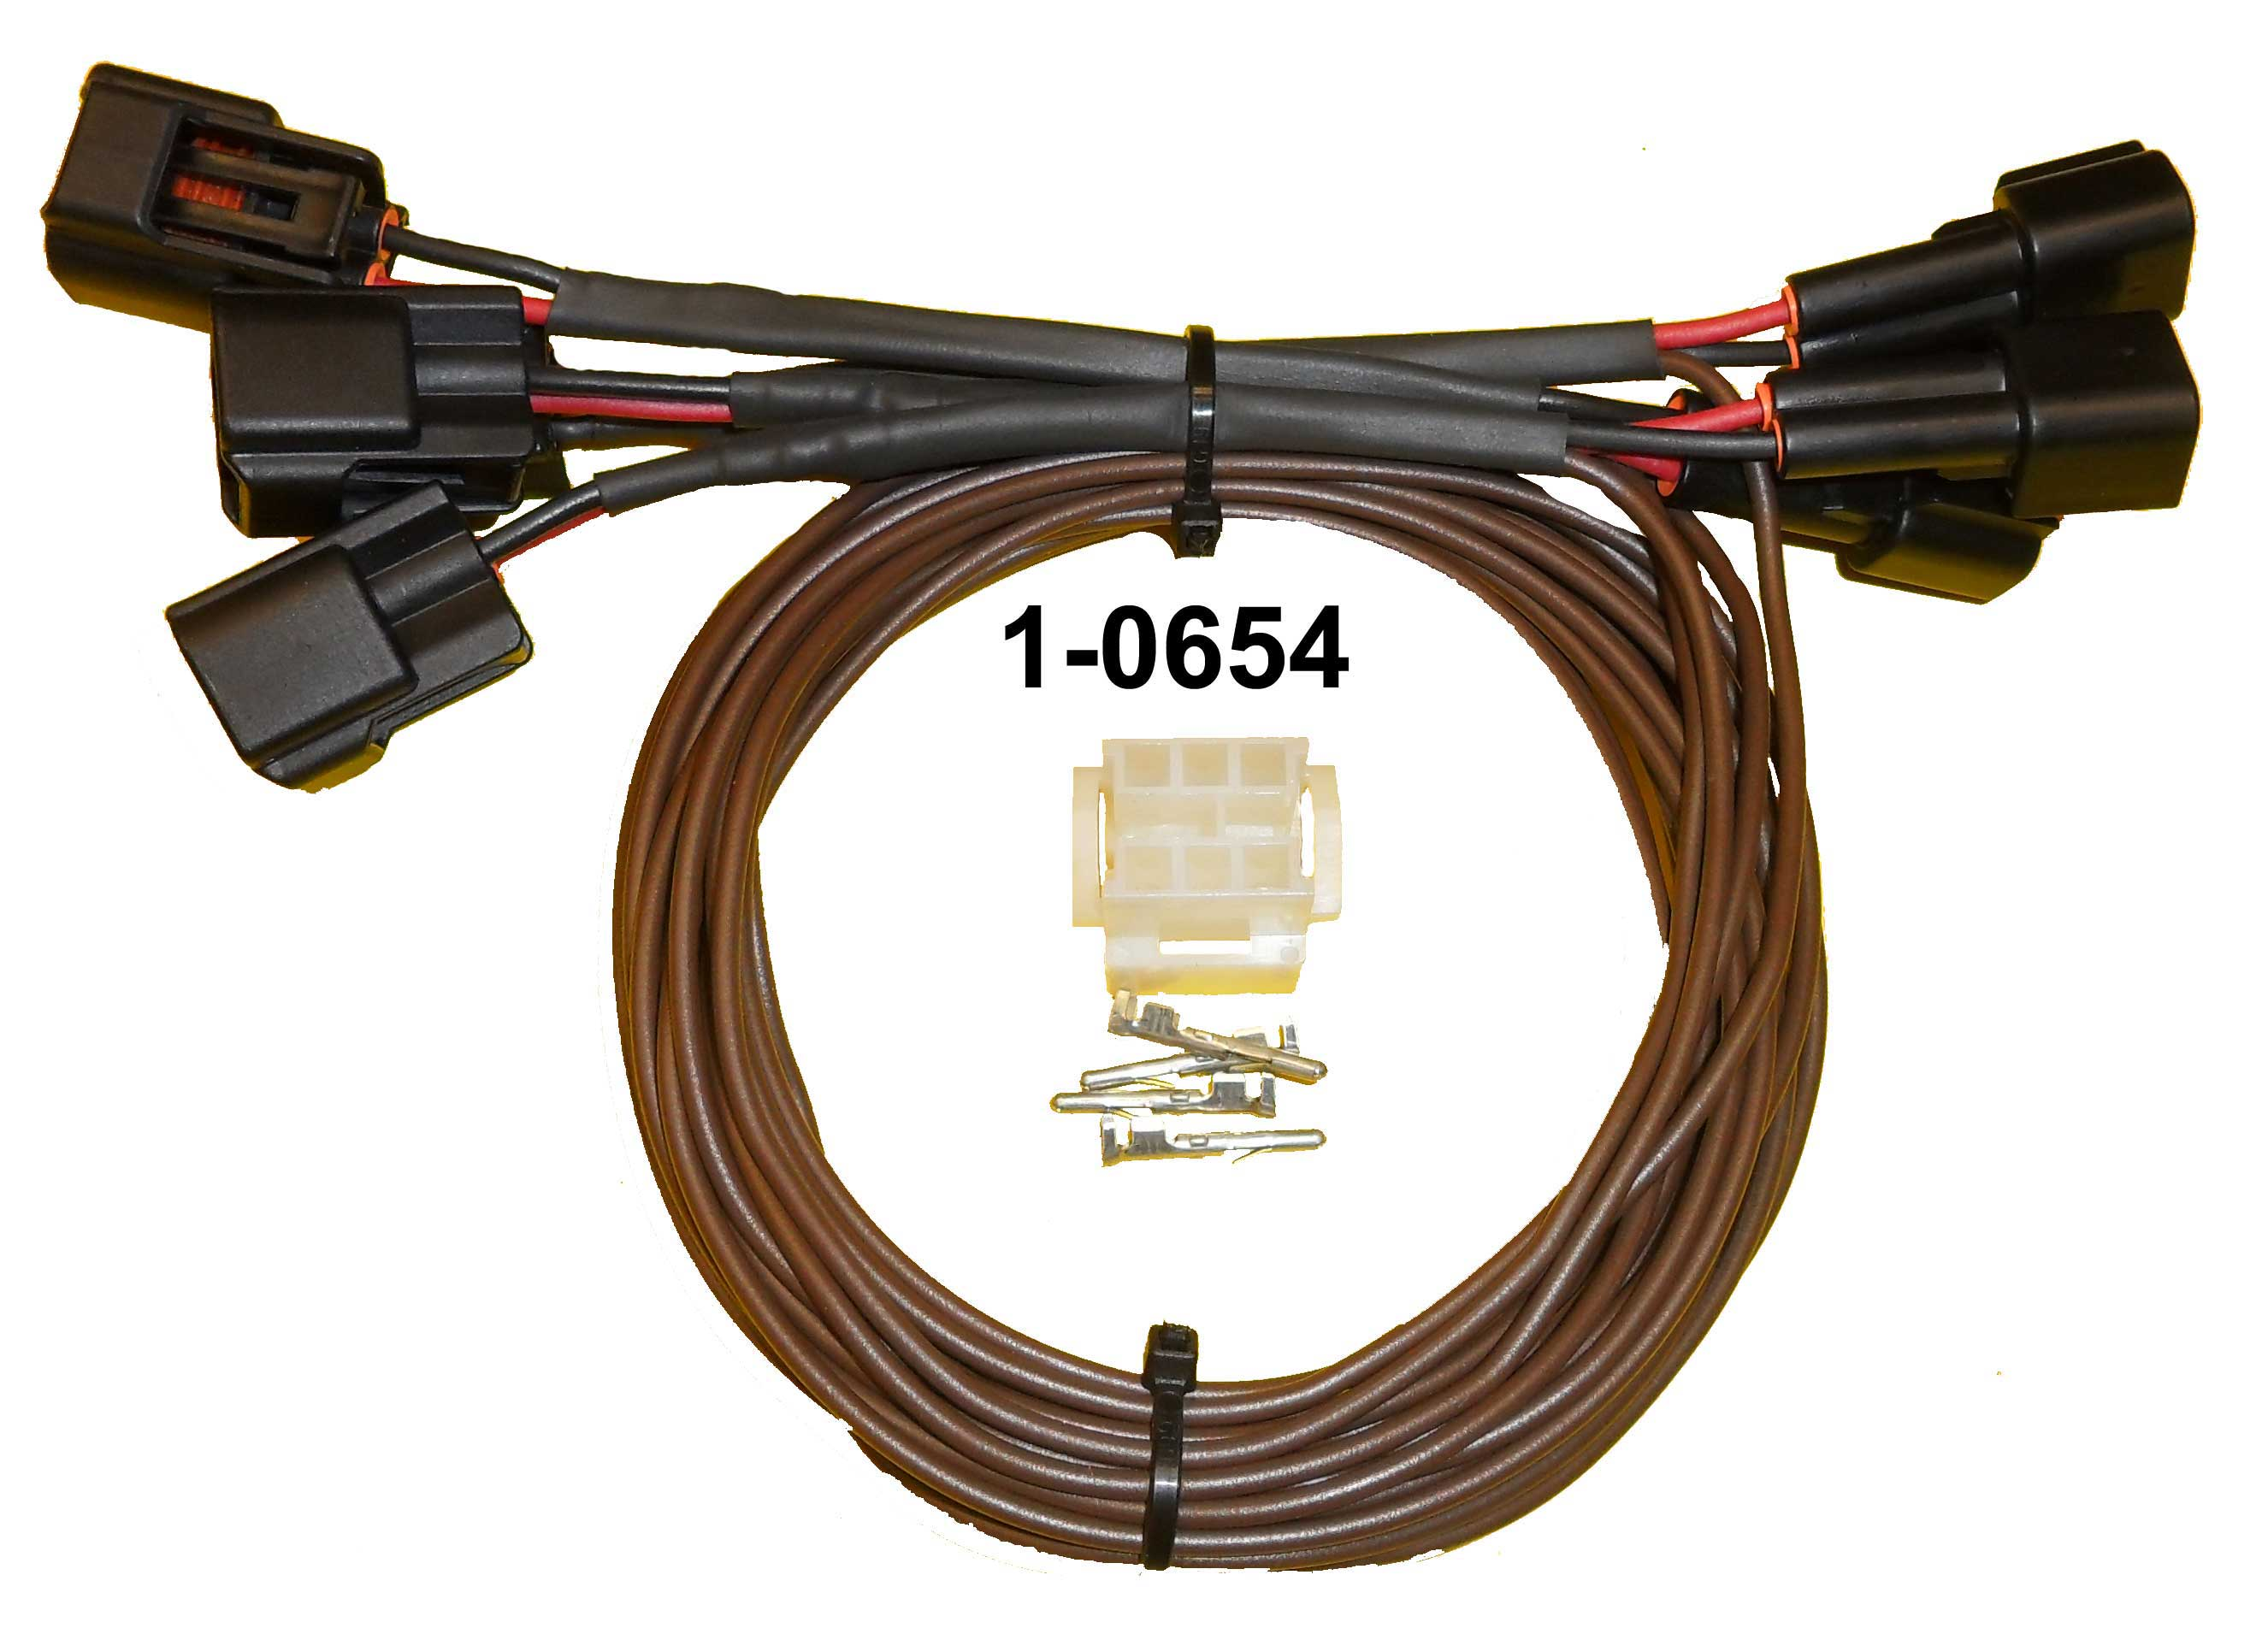 plete Universal Wiring Harness For 82 Cb750 Custom furthermore 131221 Peruvian Amazon 7 Santa Cruz Frogs together with 598063 80 Shovel Wiring Harness additionally 1999 Chevy Silverado Power Steering System likewise Second Semester Final Project. on 1976 honda super sport motorcycle wiring diagram